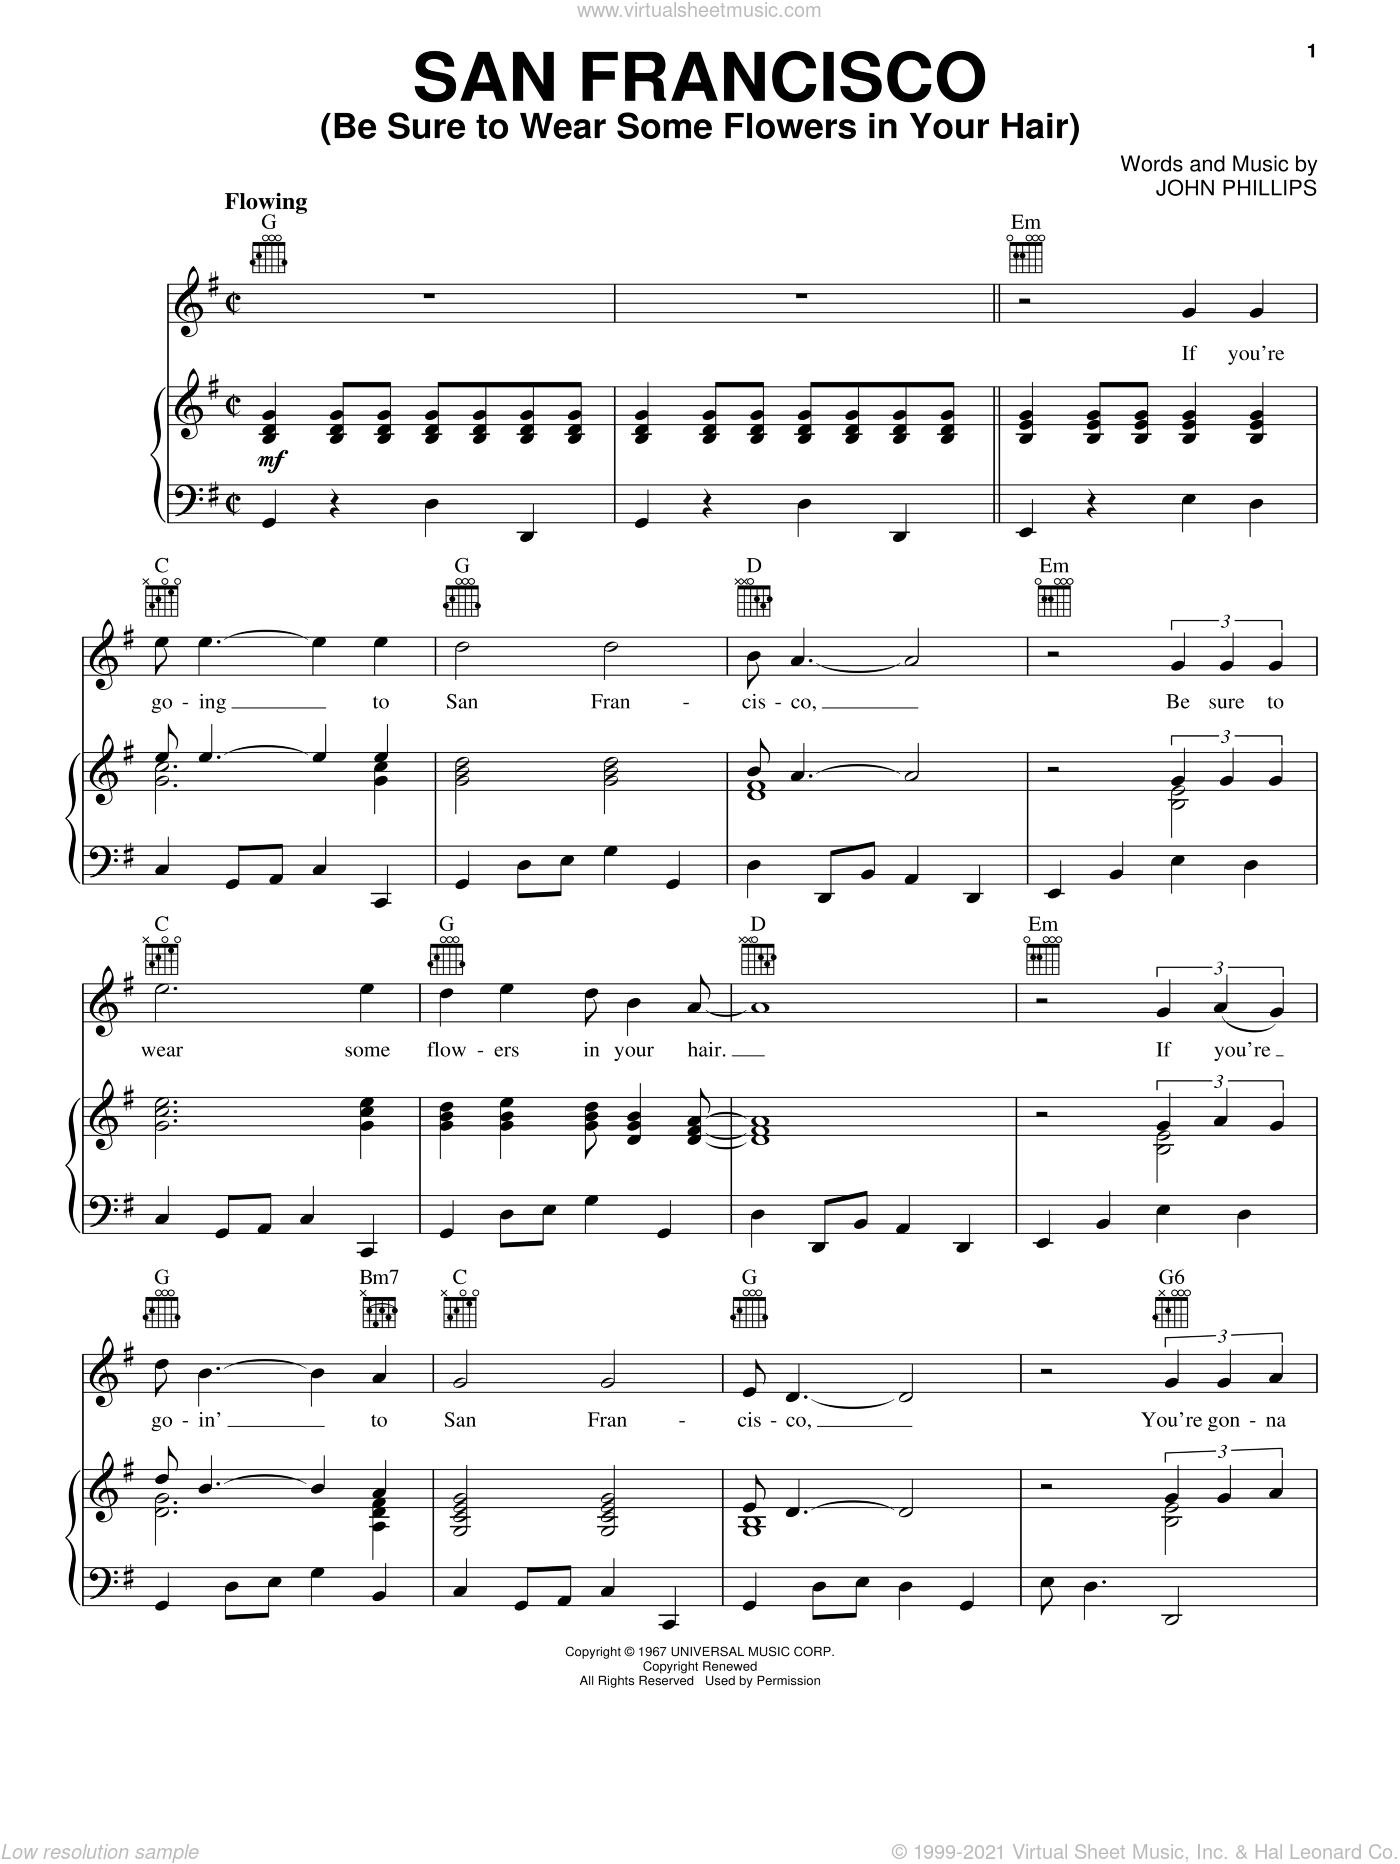 San Francisco (Be Sure To Wear Some Flowers In Your Hair) sheet music for voice, piano or guitar by Scott McKenzie and John Phillips, intermediate skill level